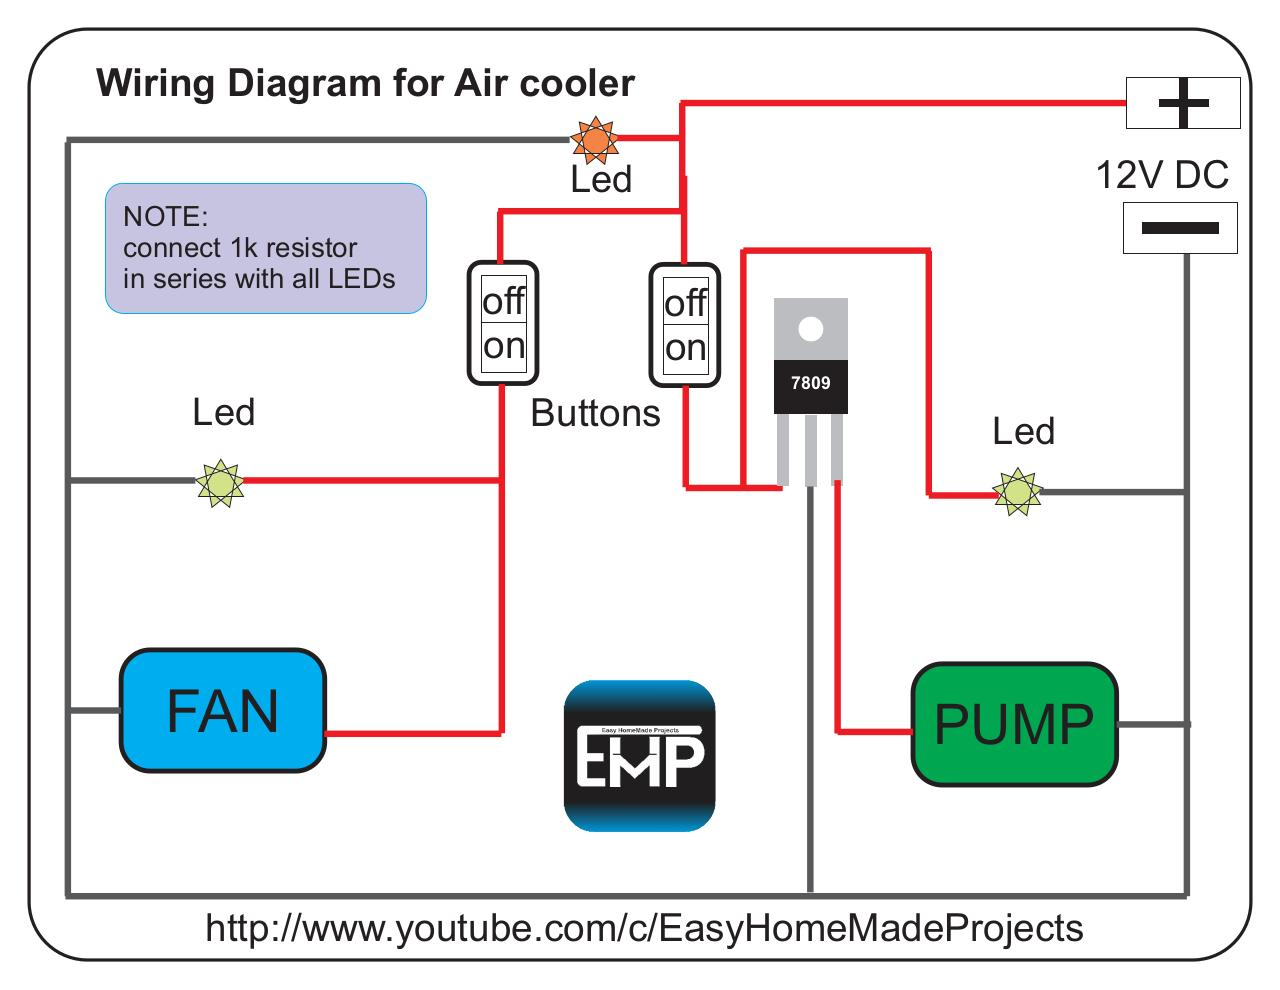 wiring cdr wiring diagram for mini air cooler pdf pdf archive rh pdf archive com Swamp Cooler Wiring-Diagram Walk-In Cooler Ladder Diagram